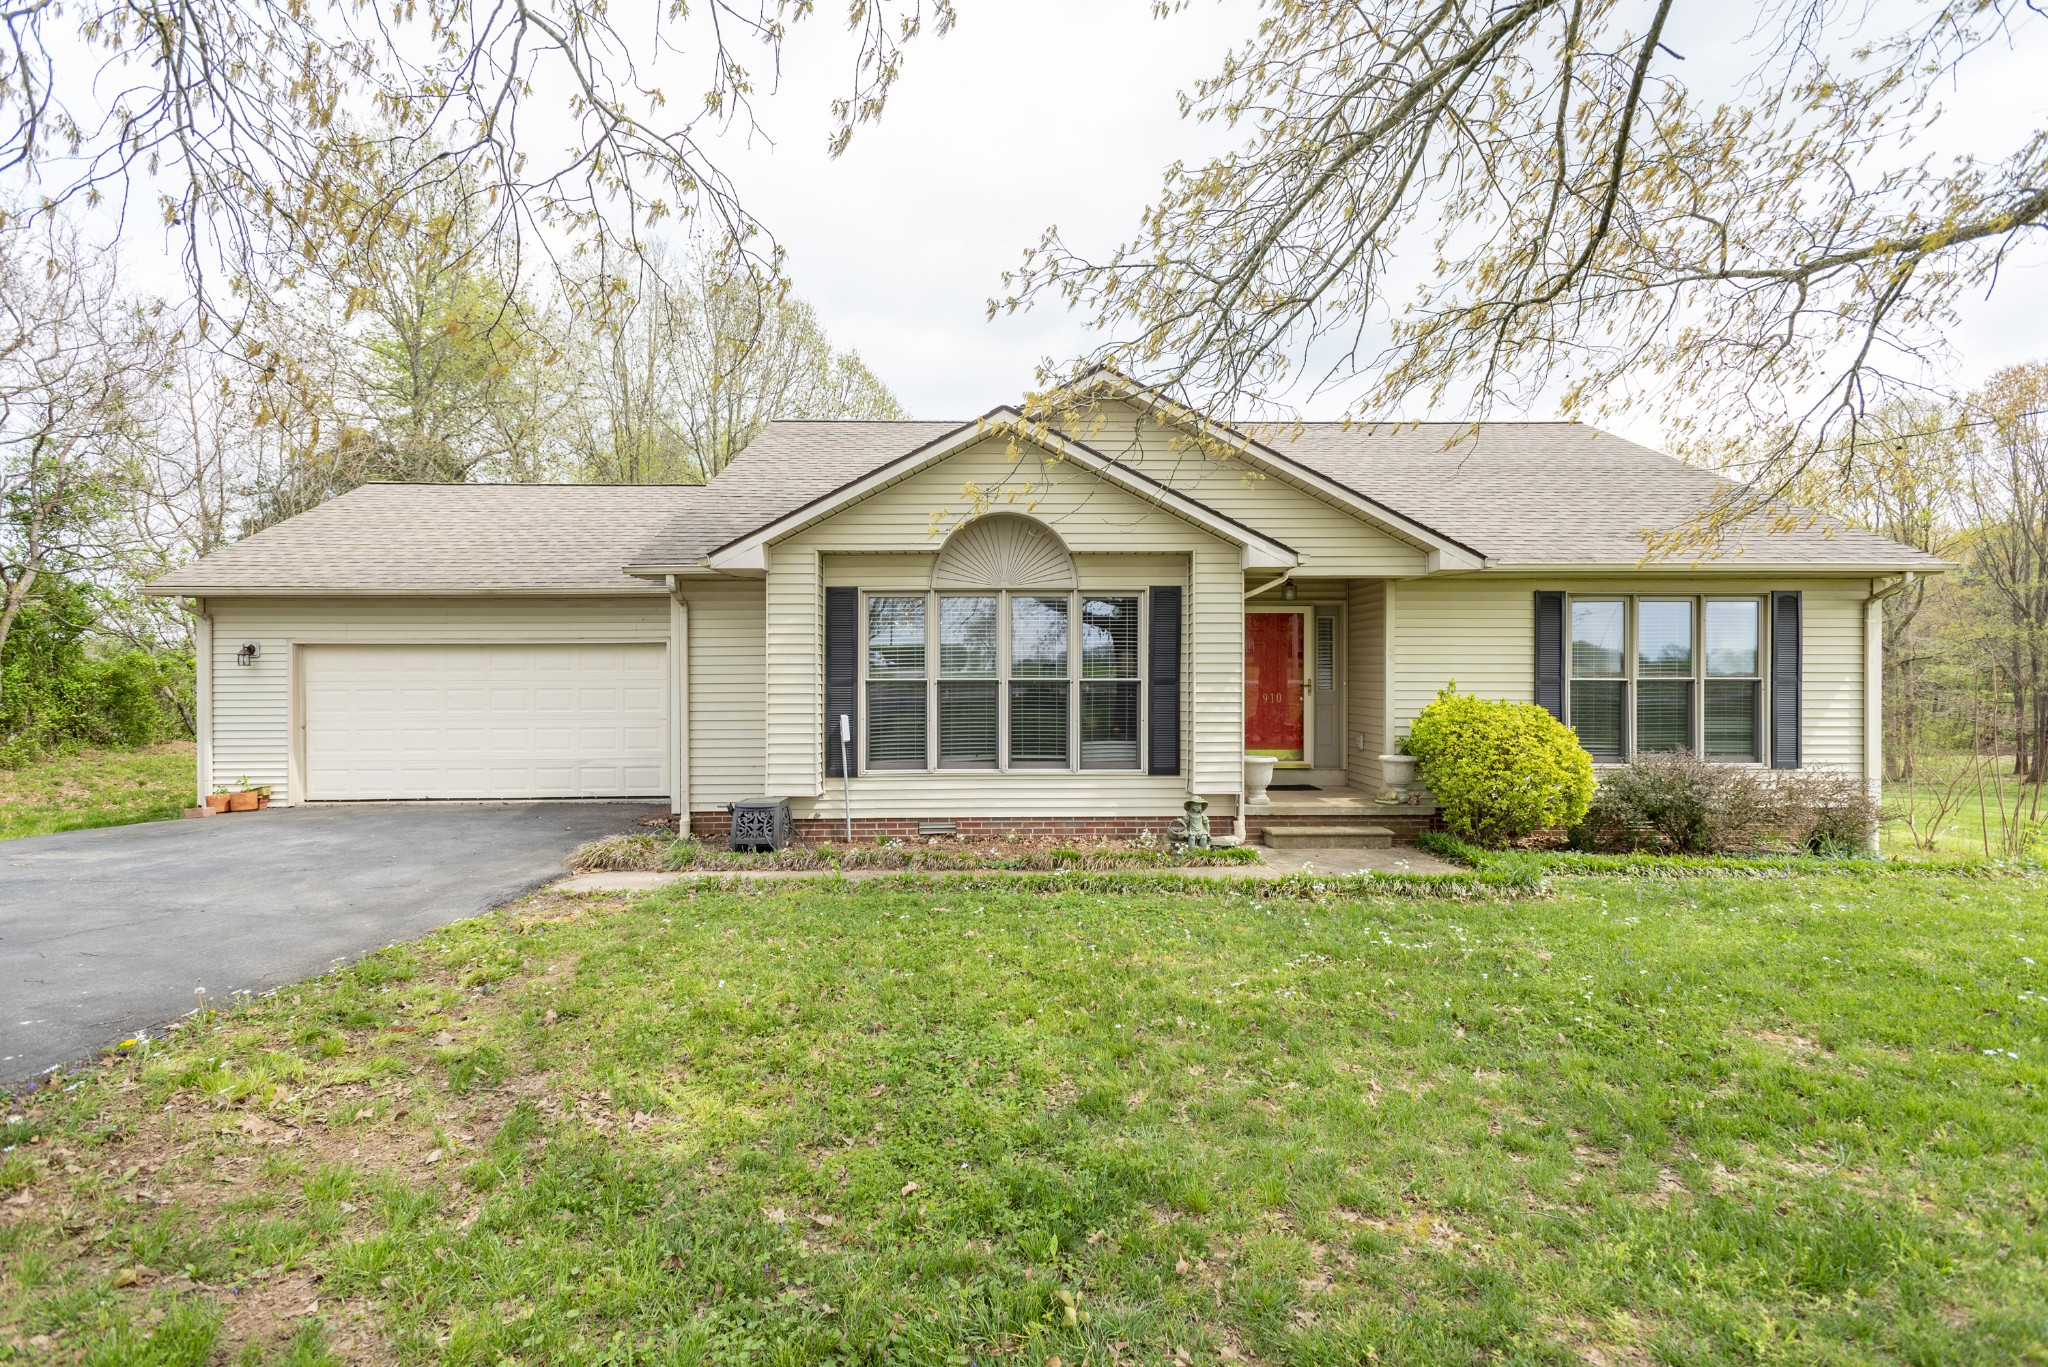 910 Gary Ln Property Photo - Hopkinsville, KY real estate listing